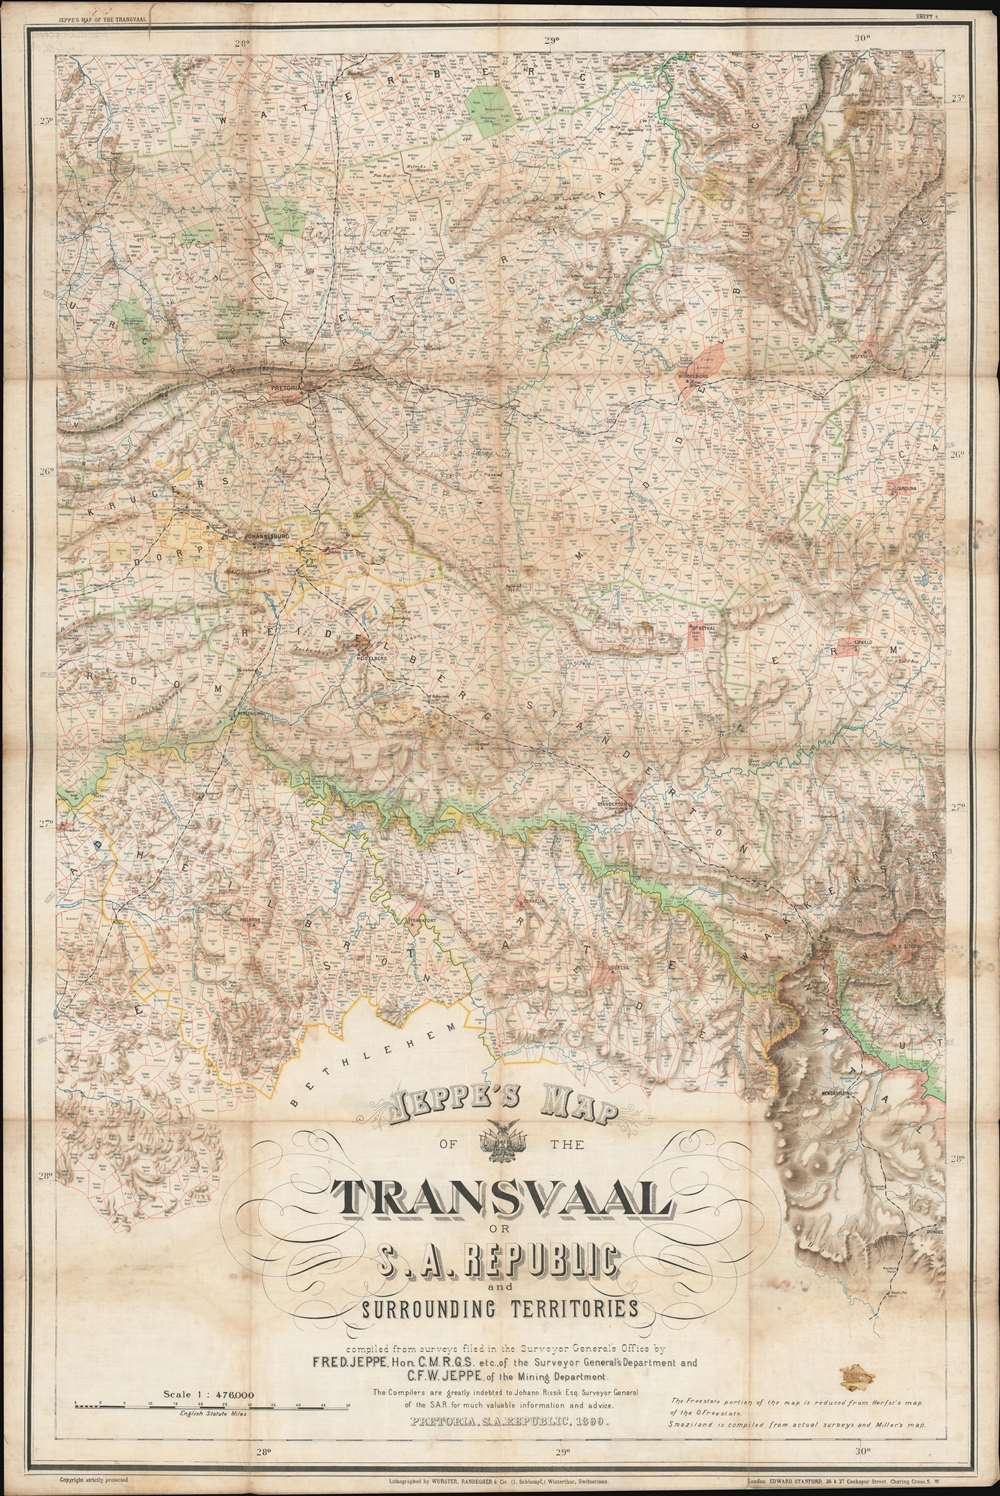 Jeppe's Map of the TRANSVAAL S. A. Republic and Surrounding Territories. - Alternate View 1